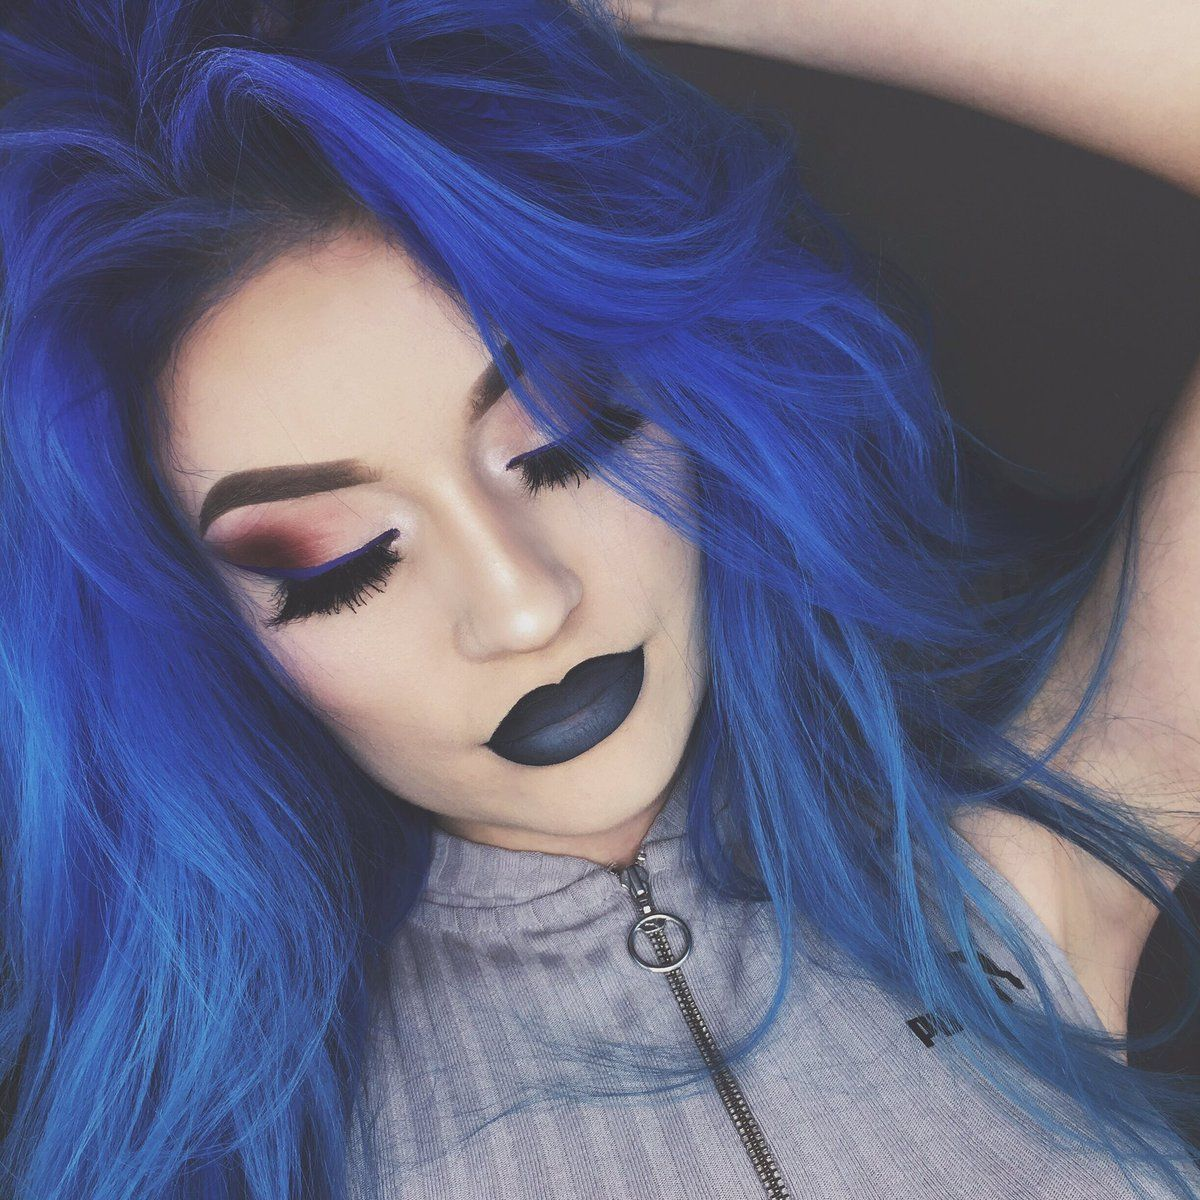 Image result for naomi jon blue hair | hair ideas | Dyed ...